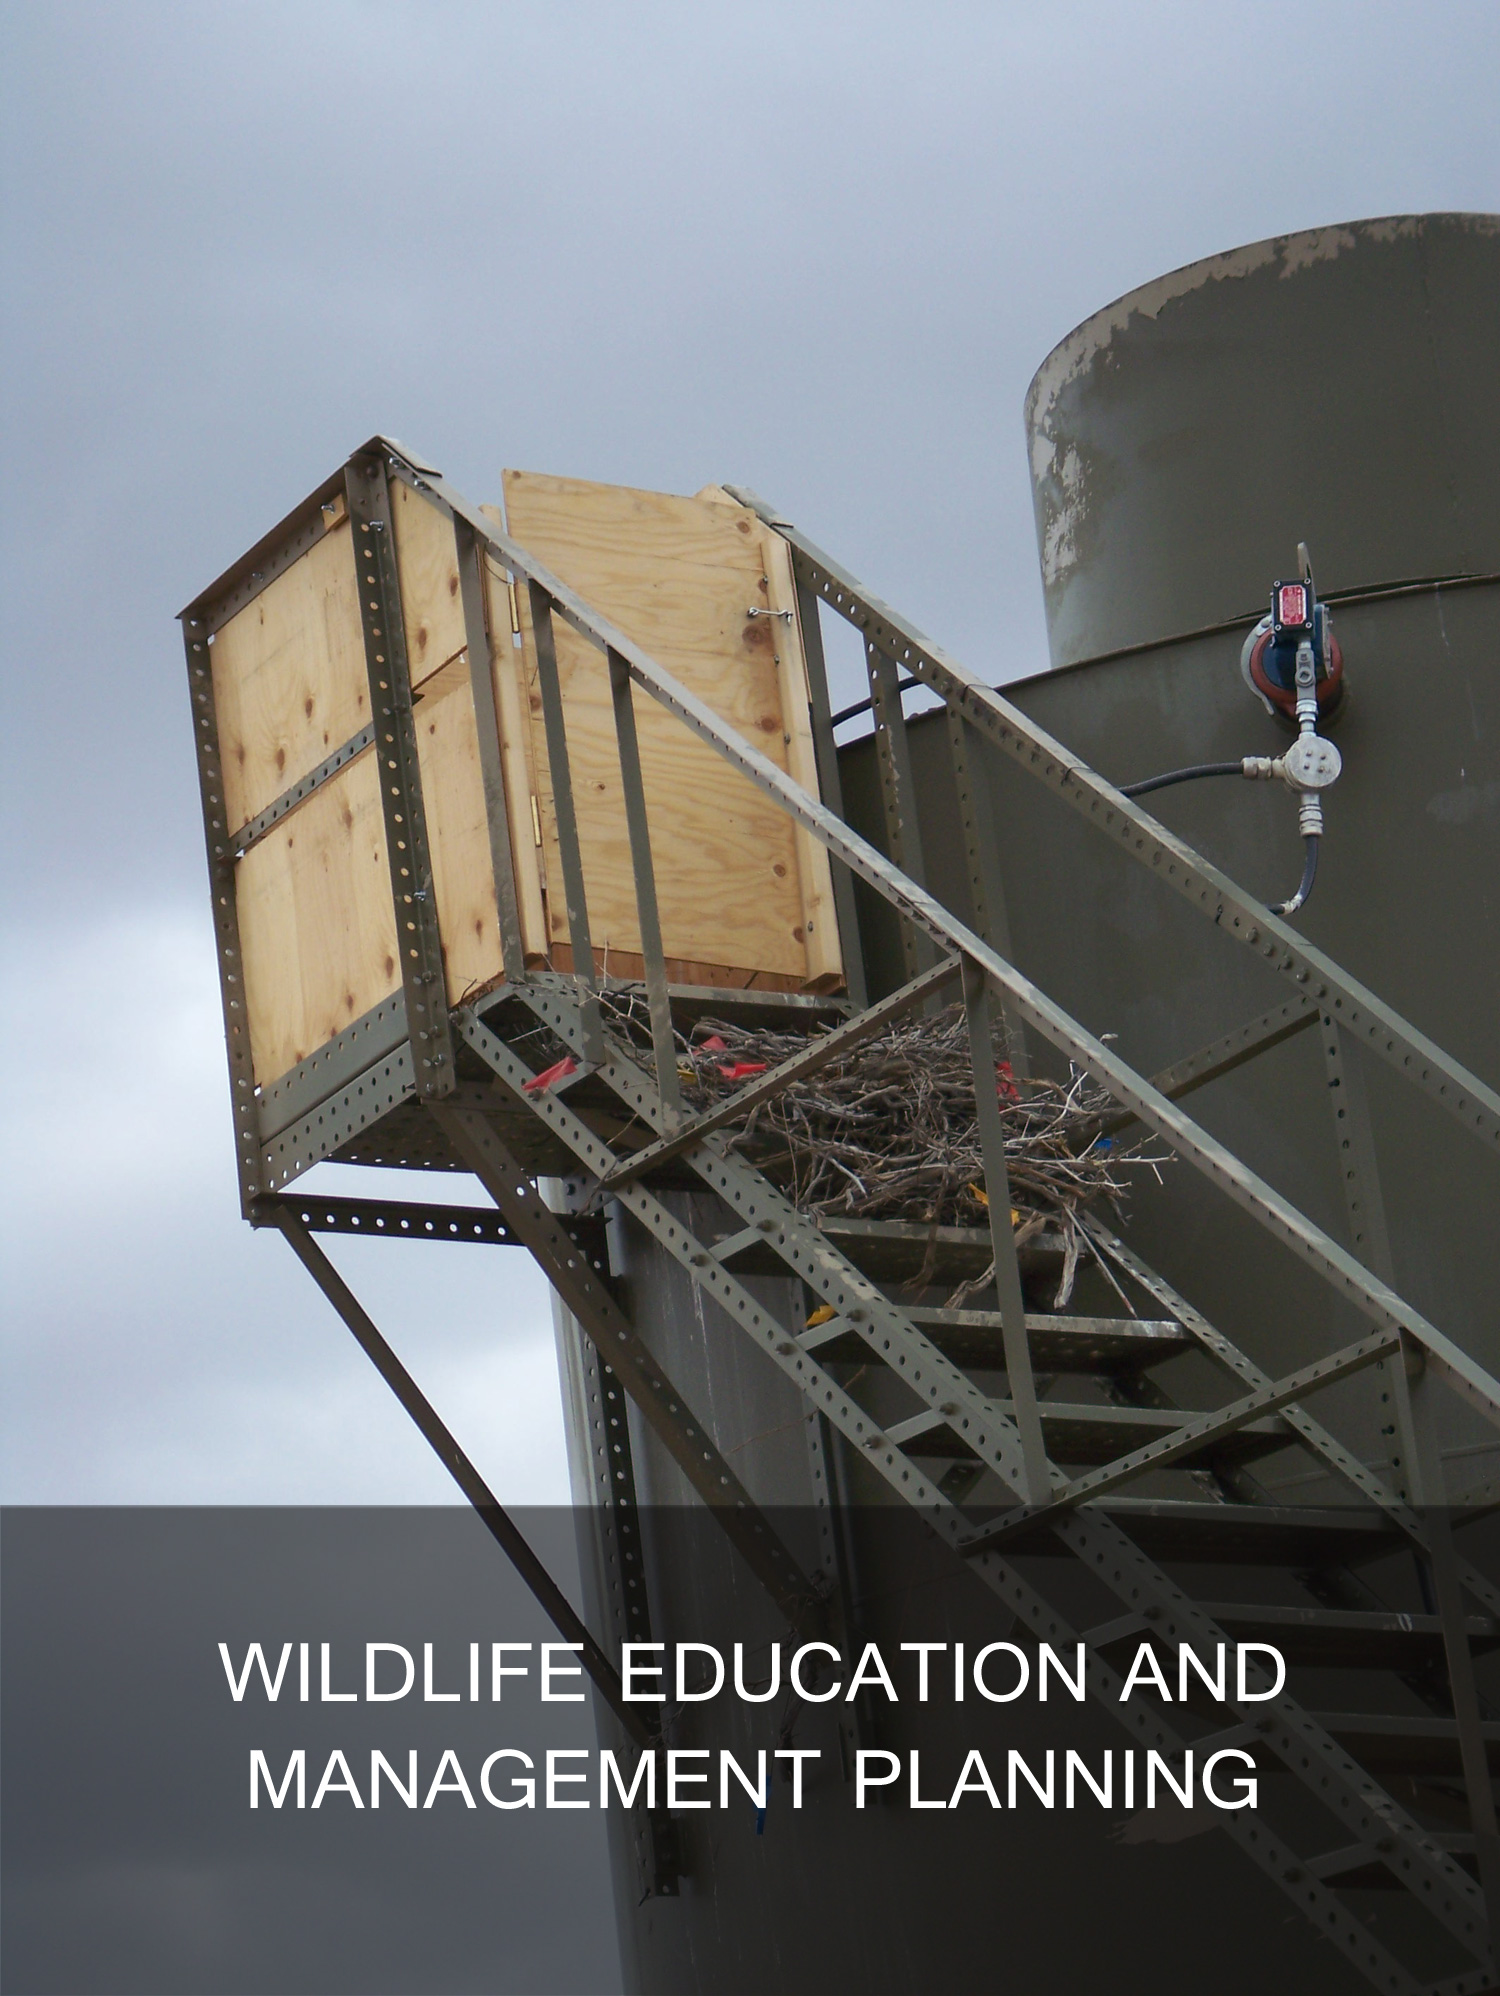 wildlife education and protection planning